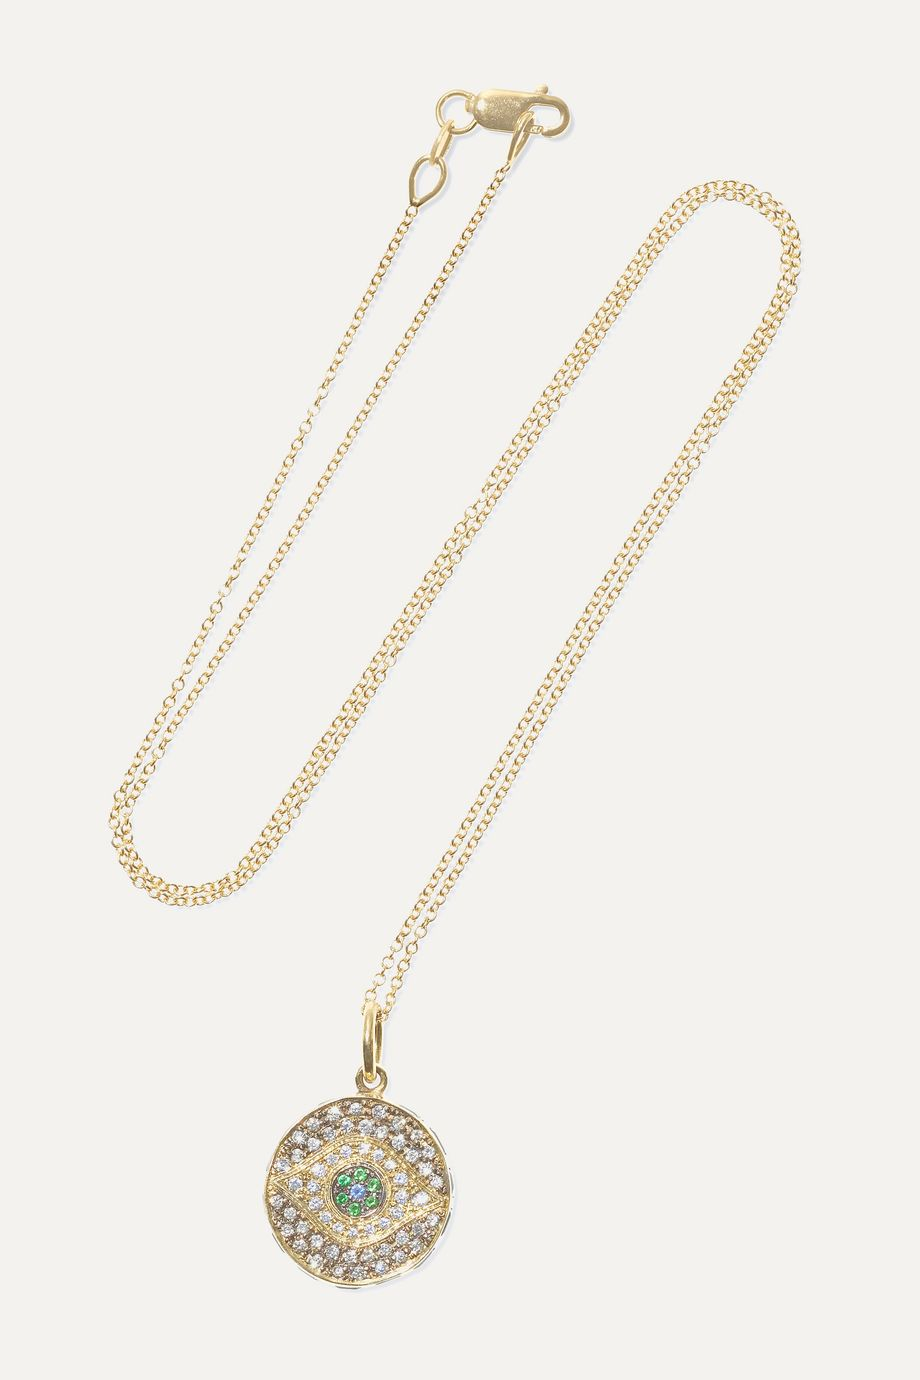 Ileana Makri Dawn Candy 18-karat gold multi-stone necklace